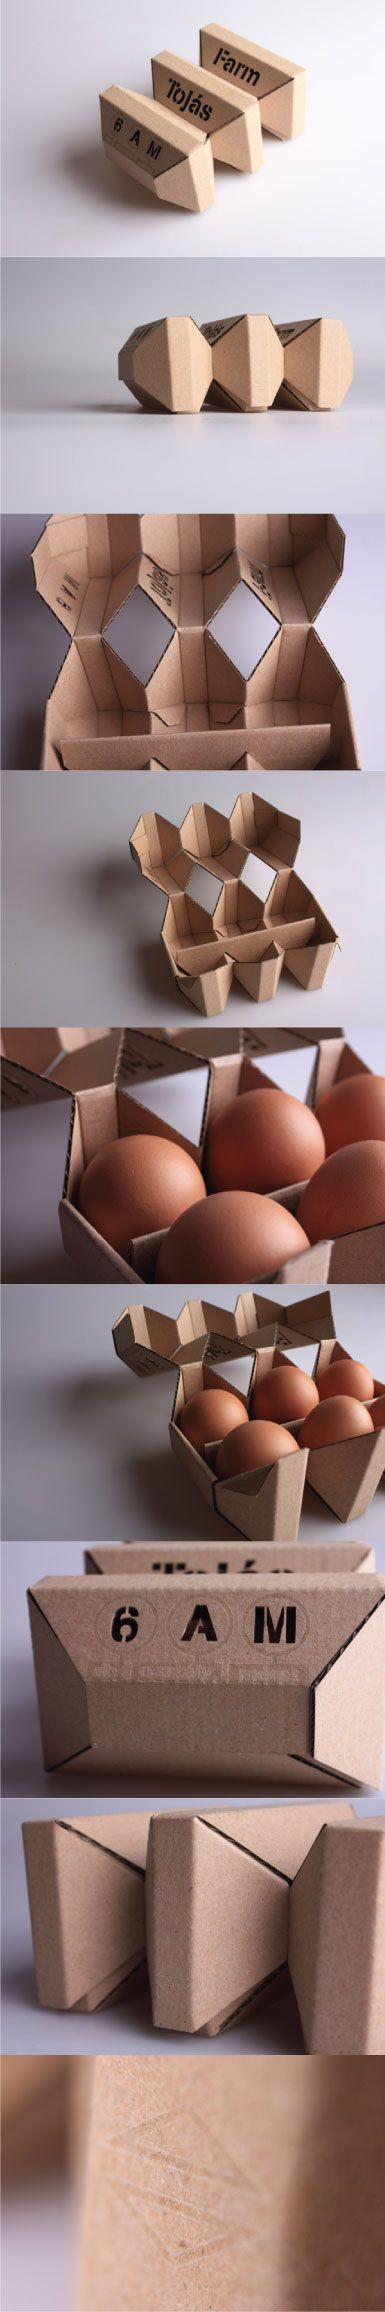 egg box by Ádám Török PD